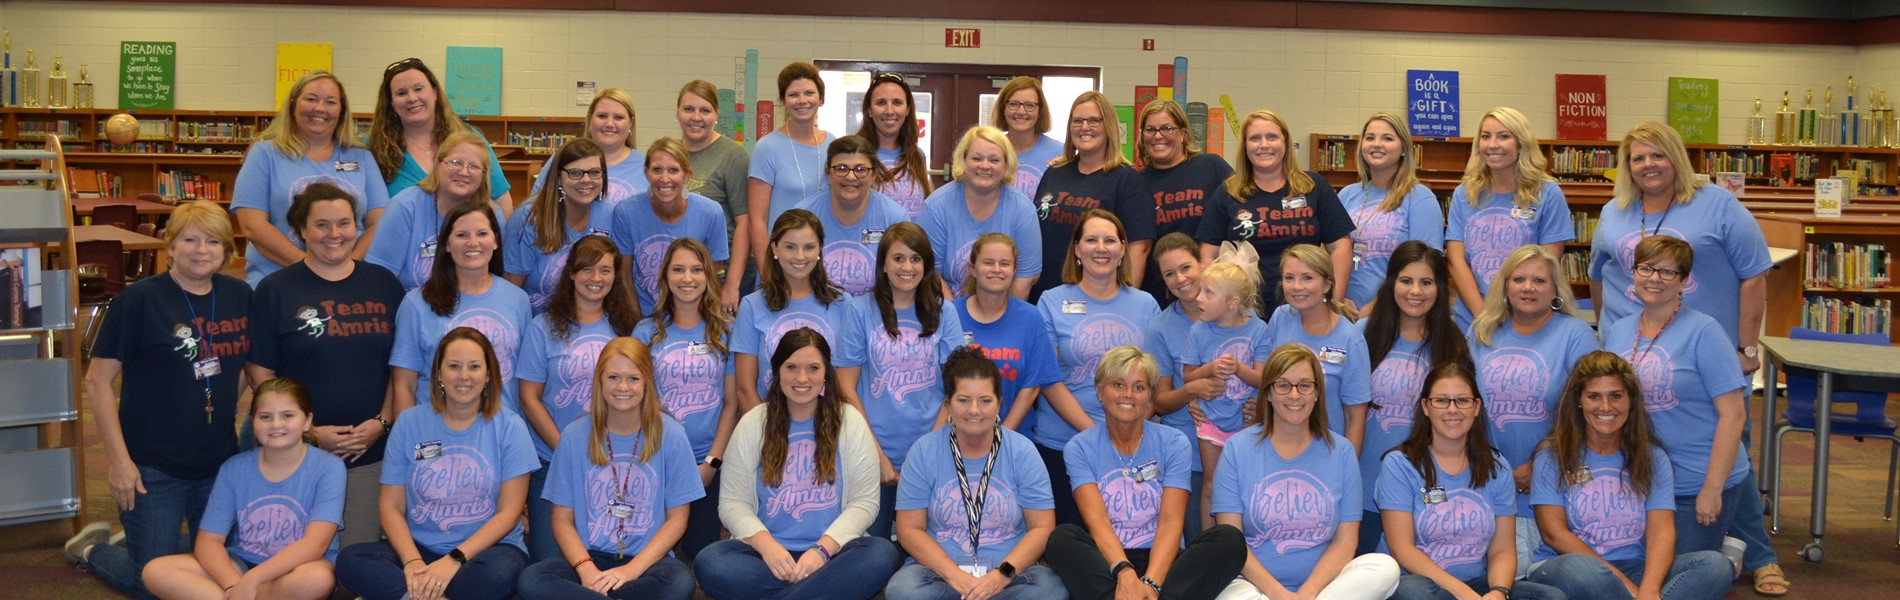 BES Faculty wearing Team Amris tshirts